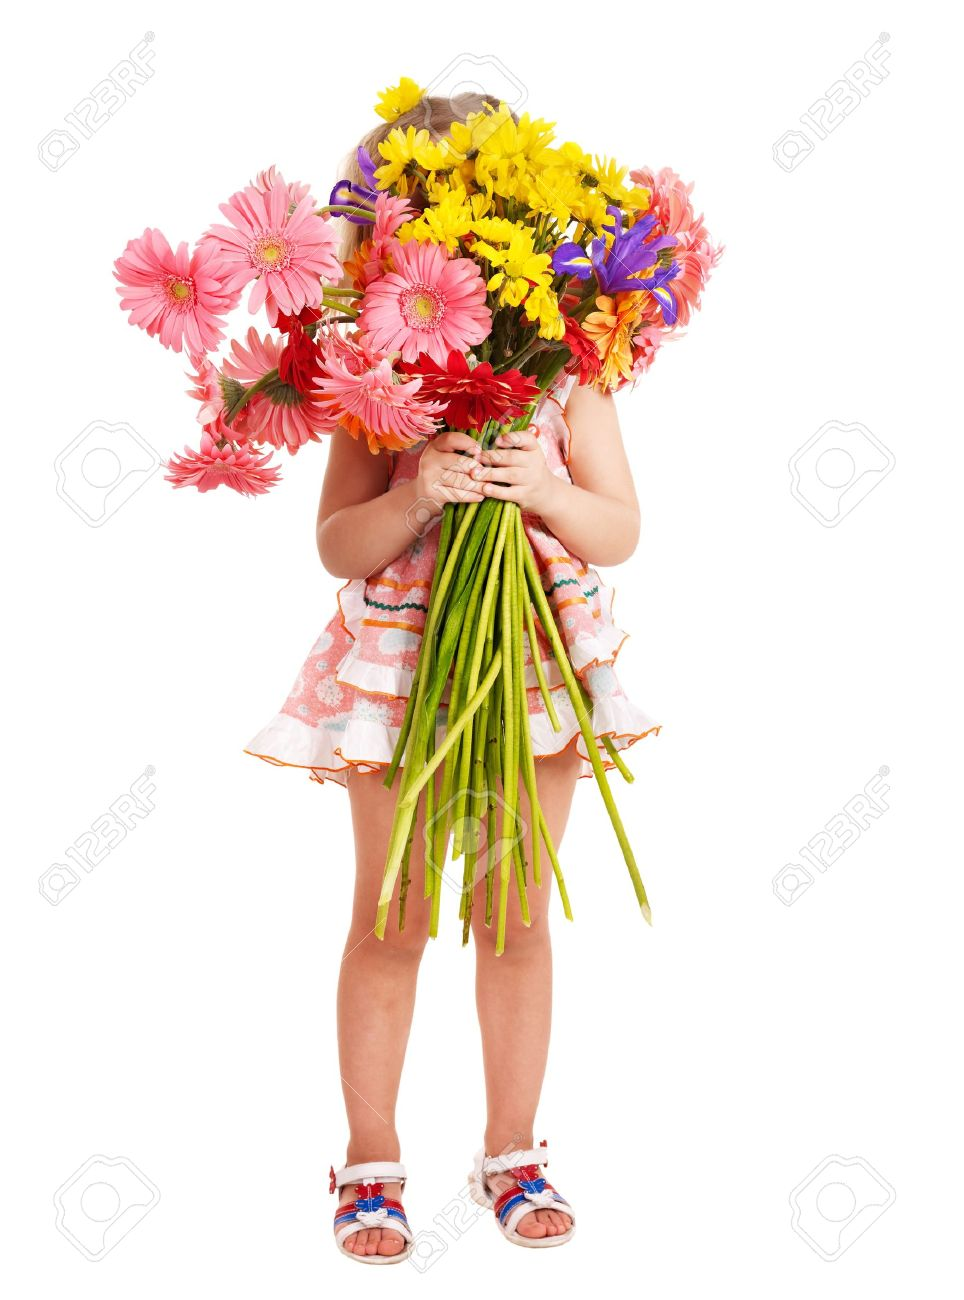 Bunch Of Flowers Stock Photos Royalty Free Bunch Of Flowers Images